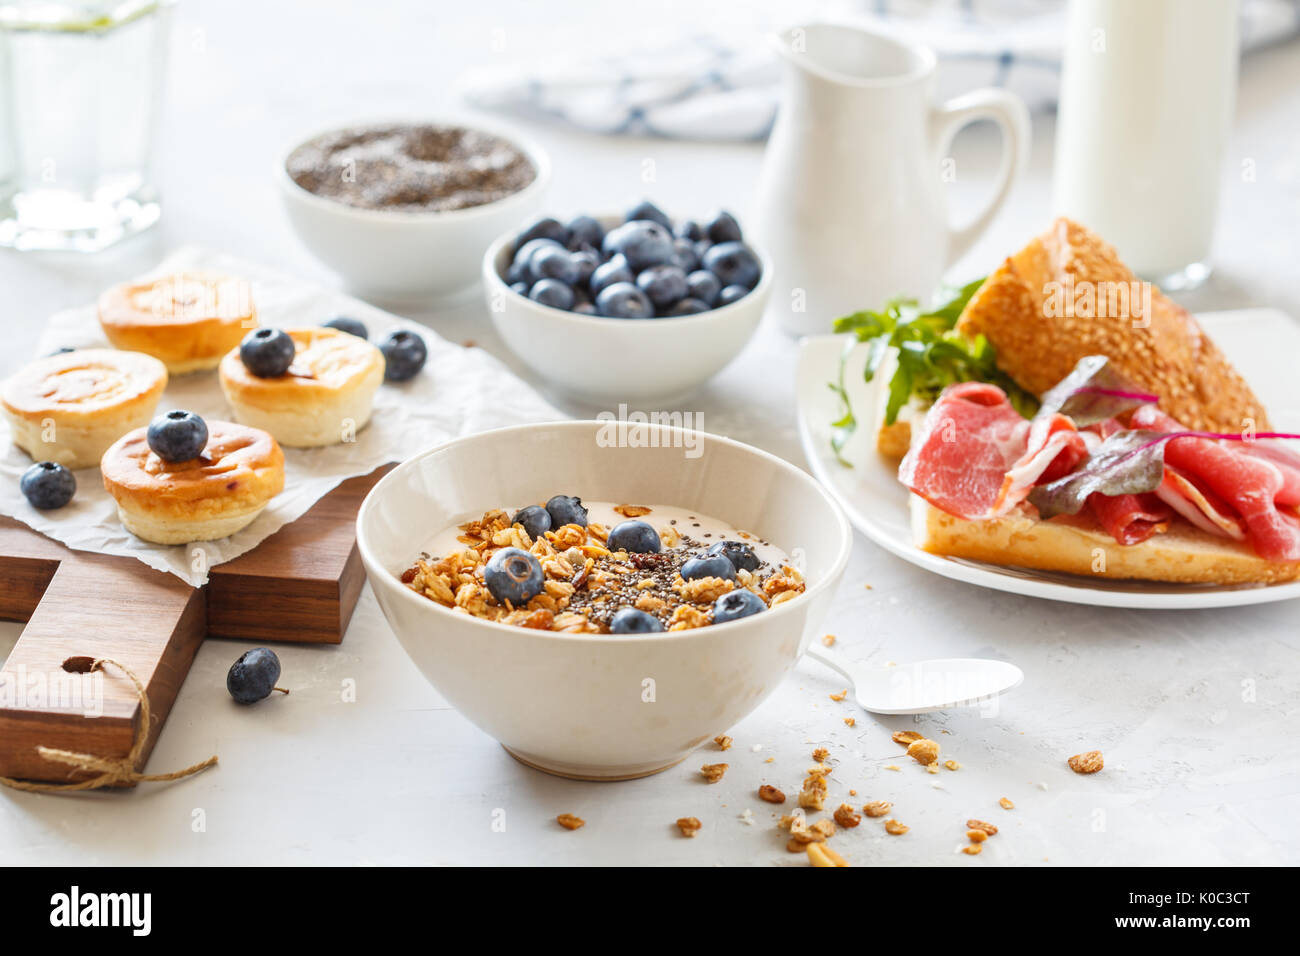 granola with yogurt, sandwiches with meat and avocado, and mini cheesecakes with blueberries for breakfast. - Stock Image